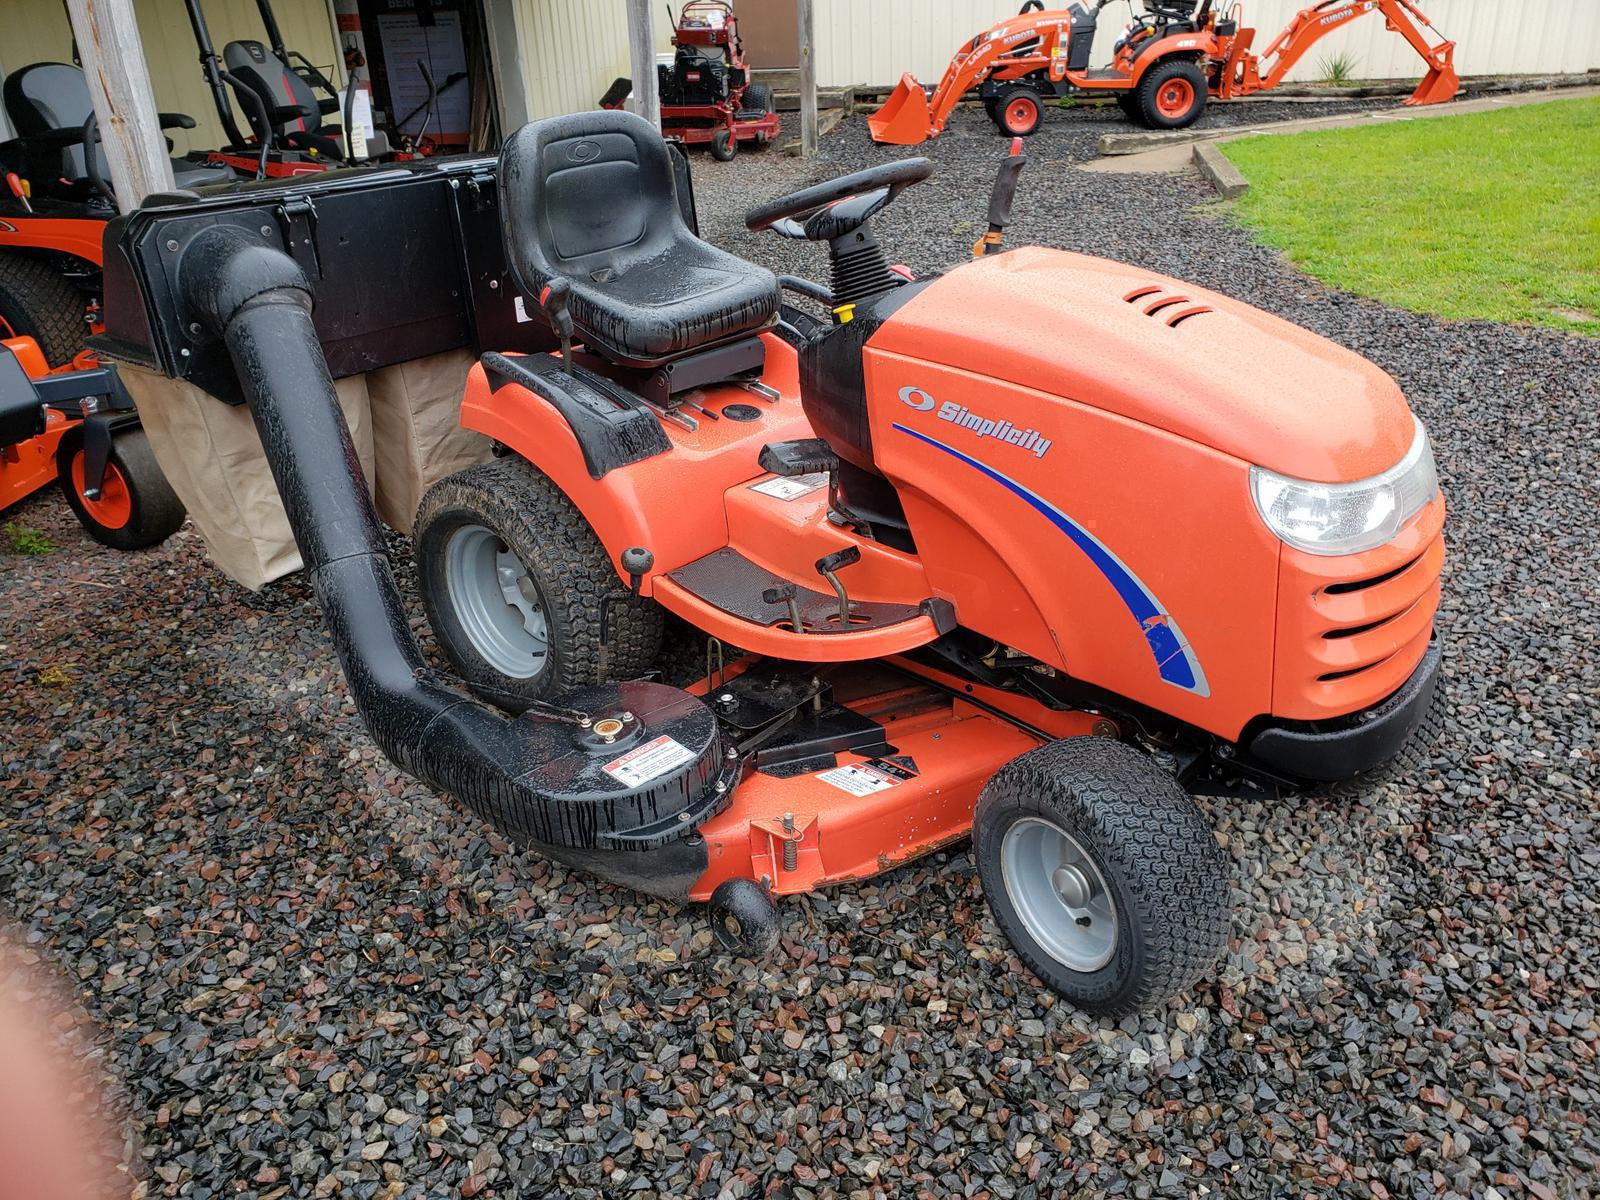 Inventory from Kubota and Simplicity Pipersville Garden